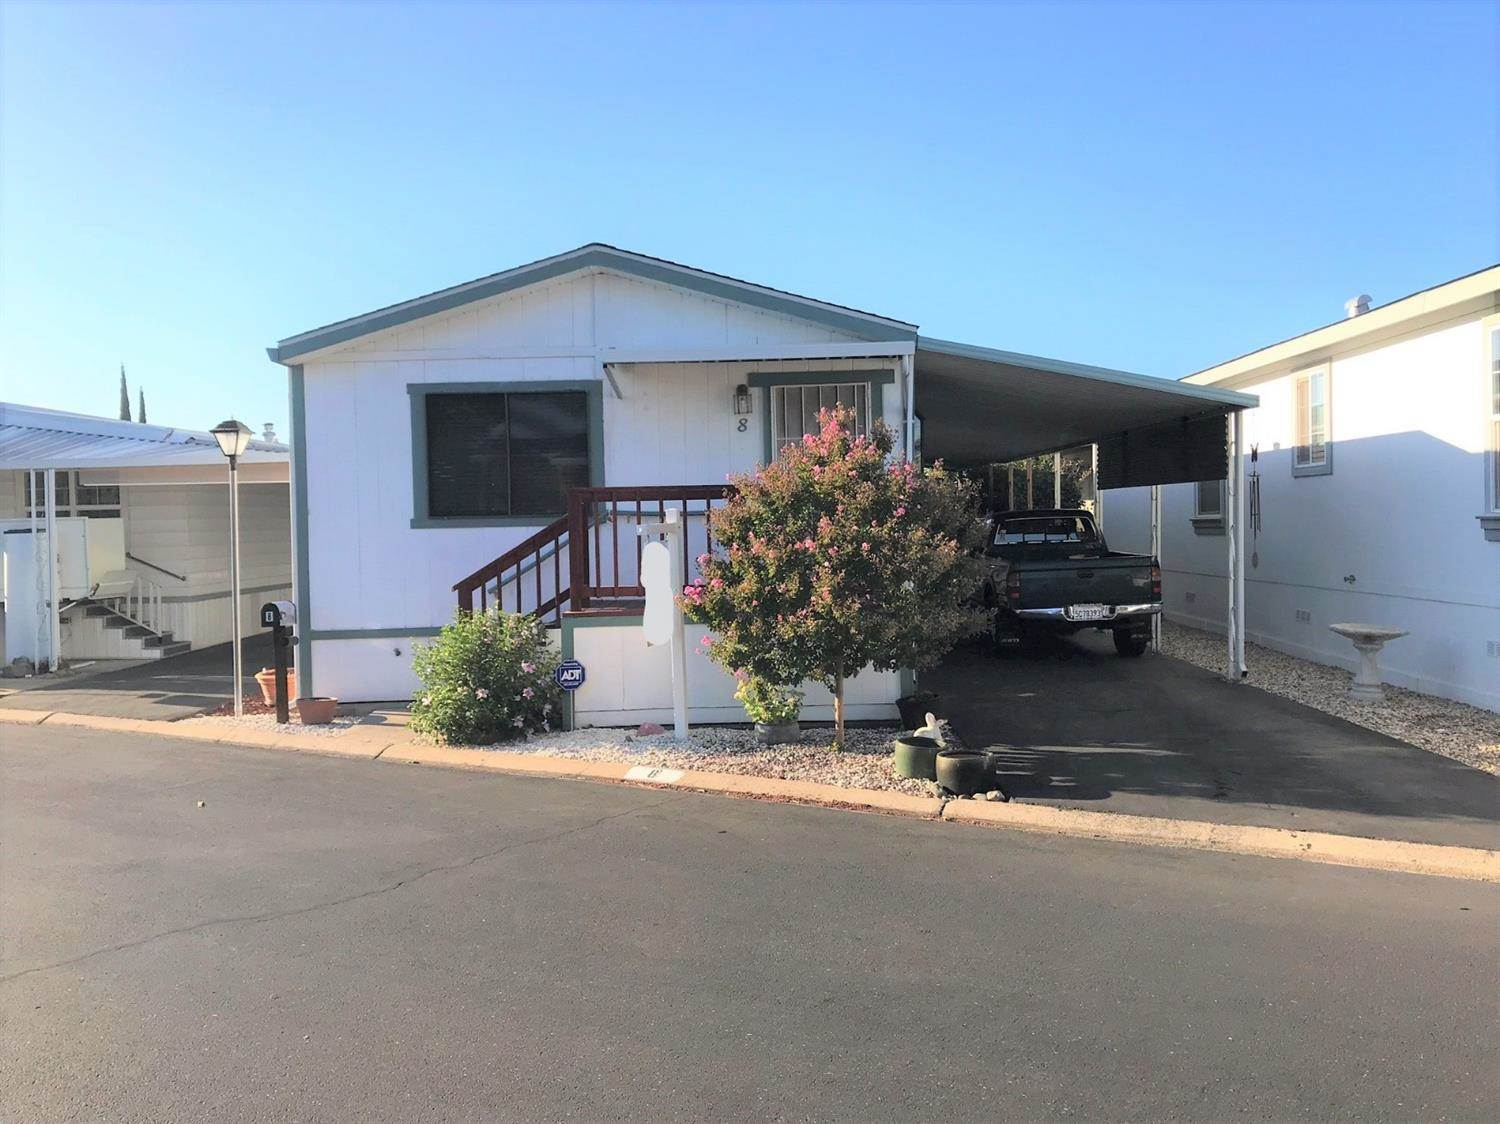 8 Nobel Crest Lane, Gold River, California 2 Bedroom as one of Homes & Land Real Estate